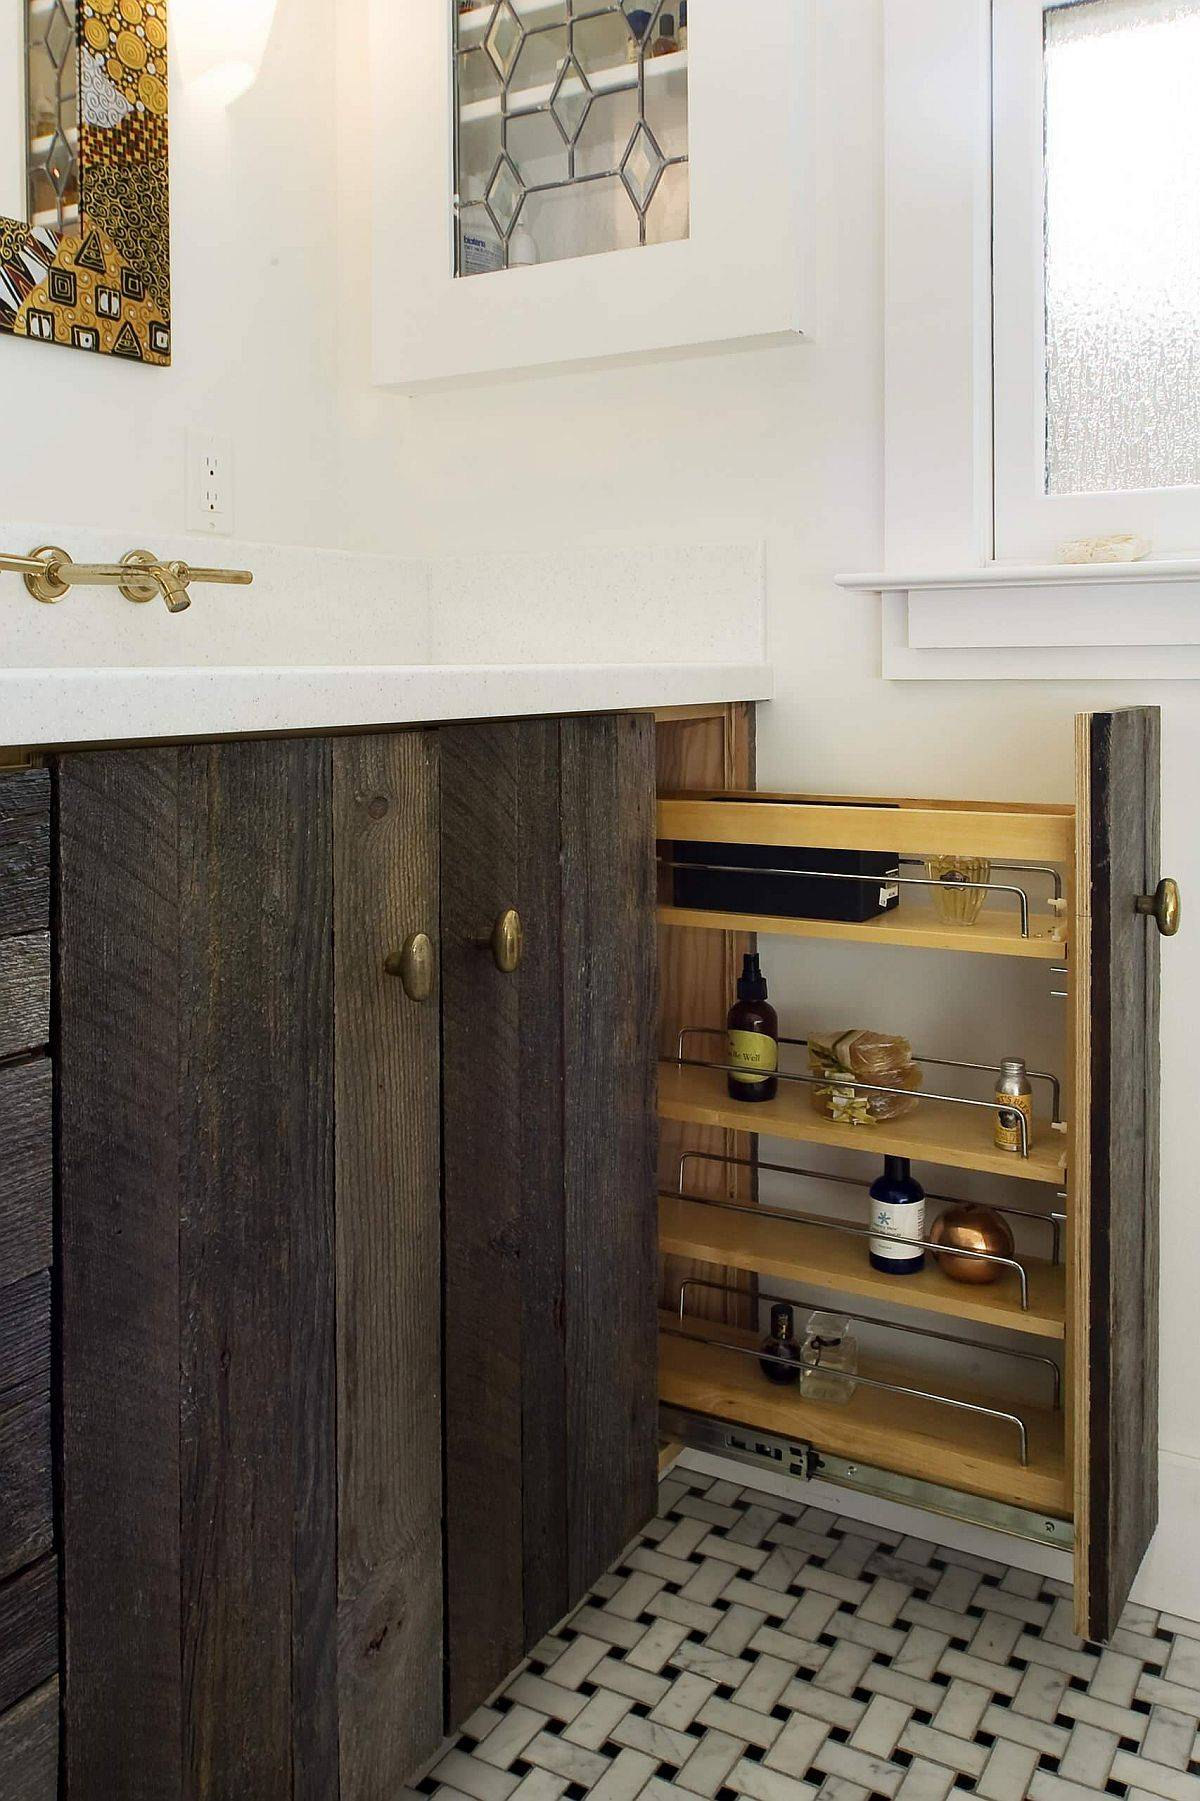 Roll-out-drawers-in-the-corner-can-store-much-more-than-those-spice-jars-22311